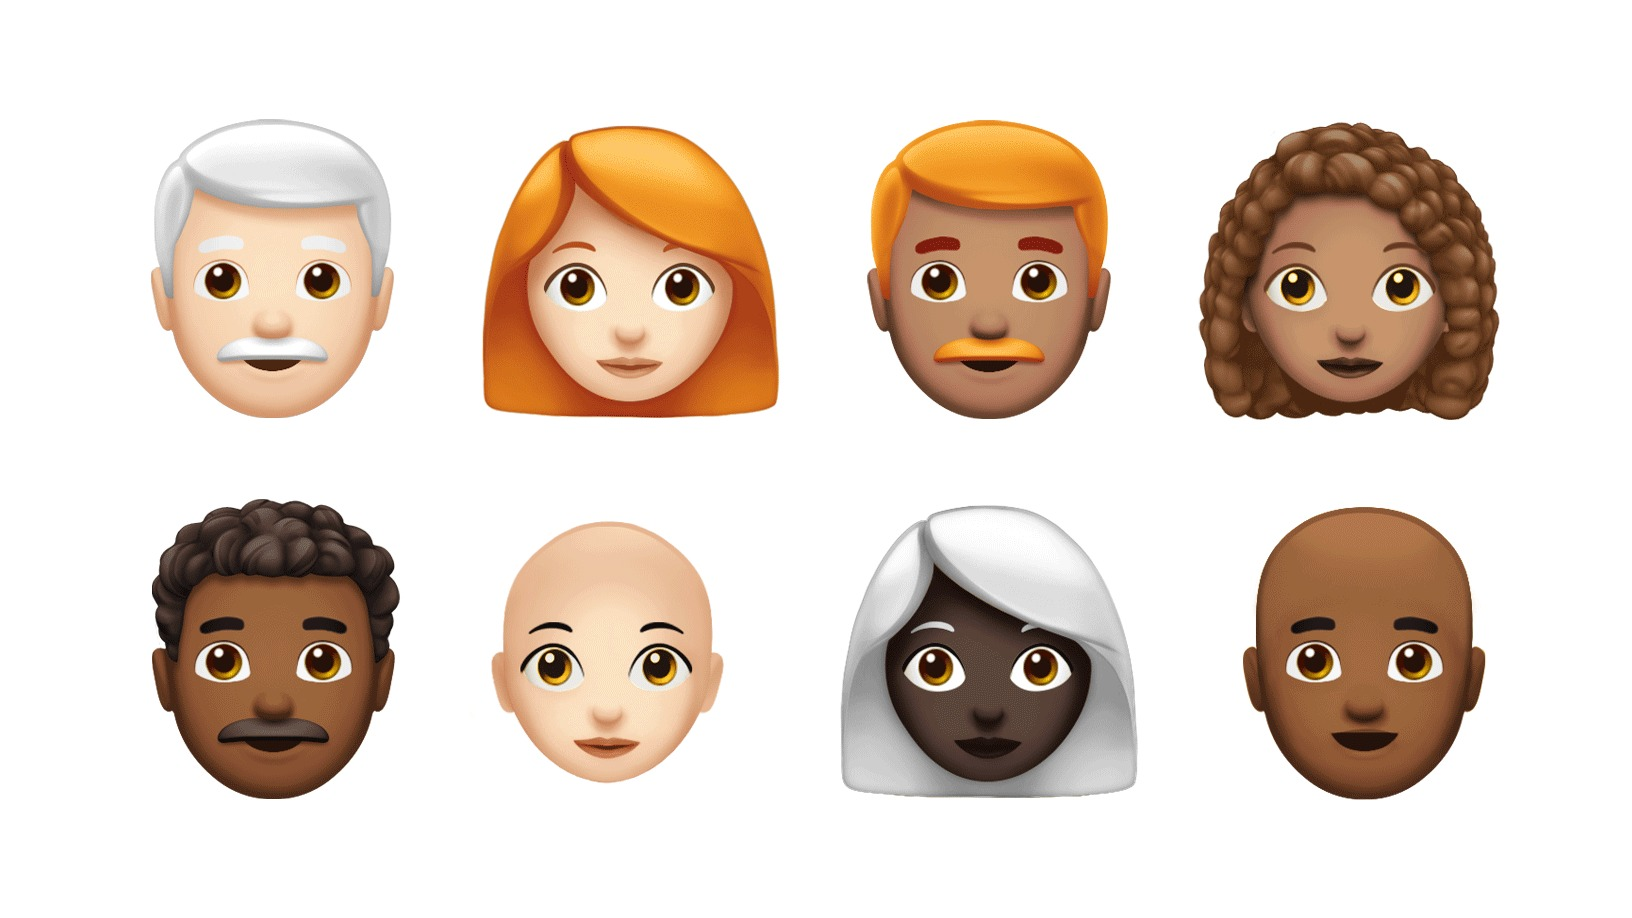 17.jul.2018 - Novos emojis da Apple